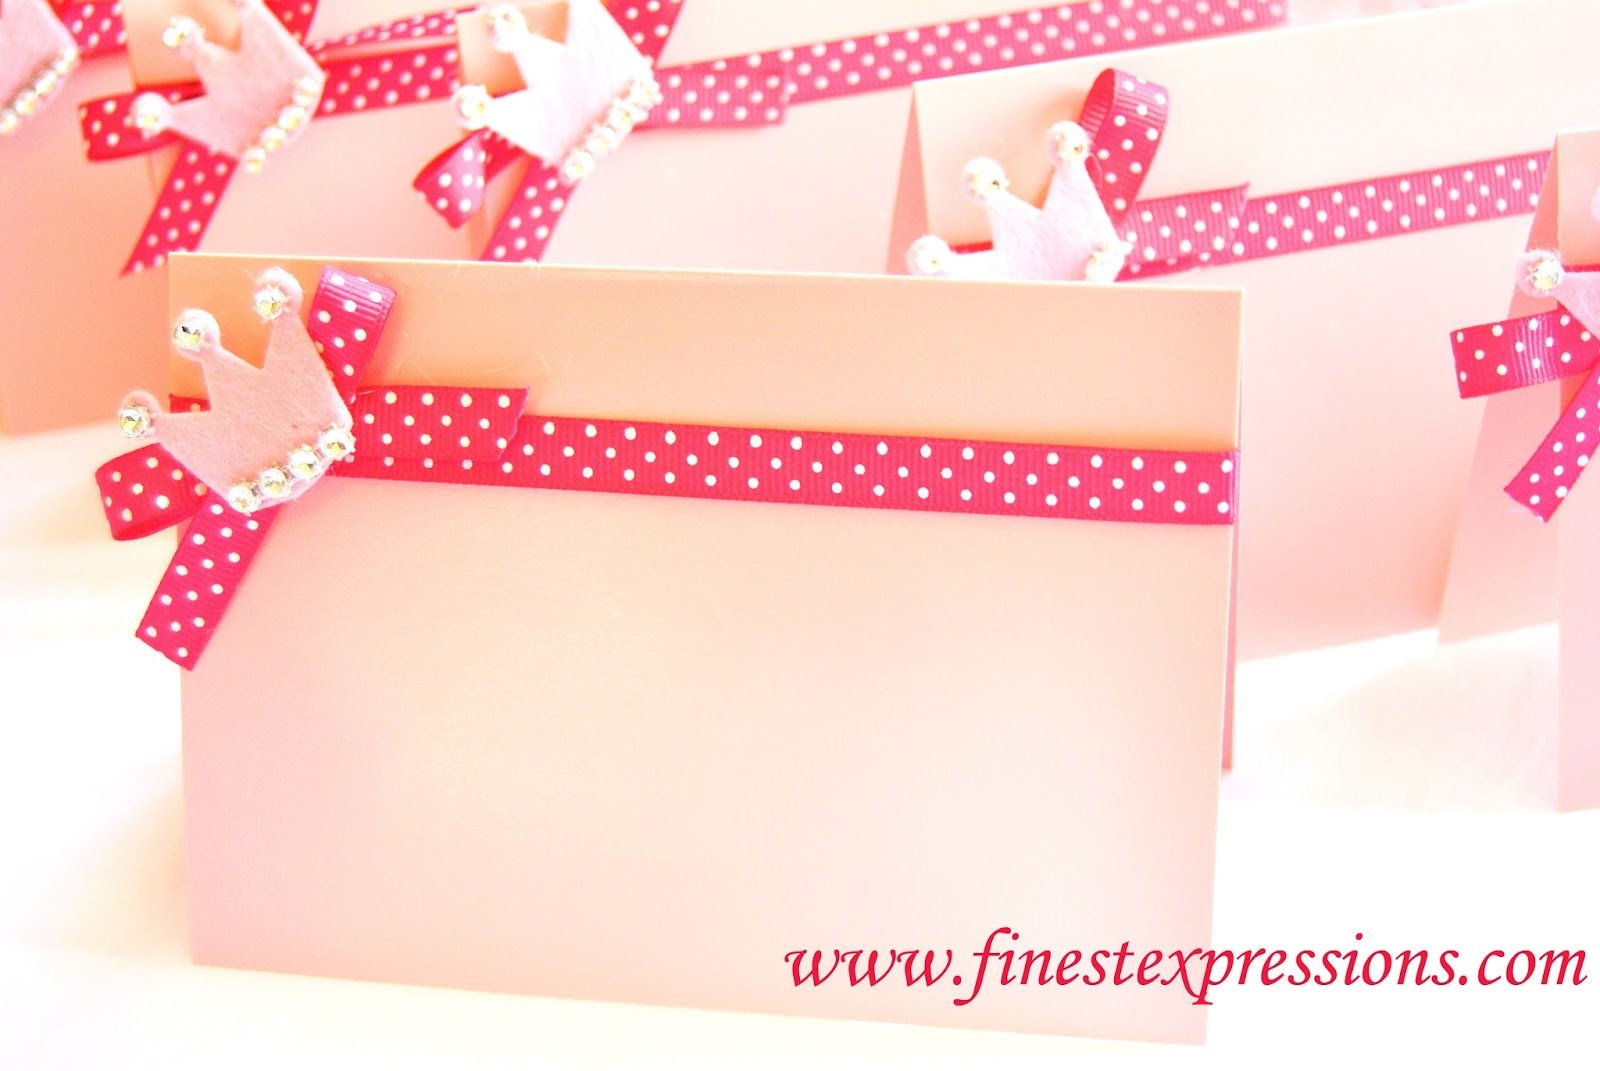 Finest Expressions: Designing & Creating Your Own Baby Shower ...